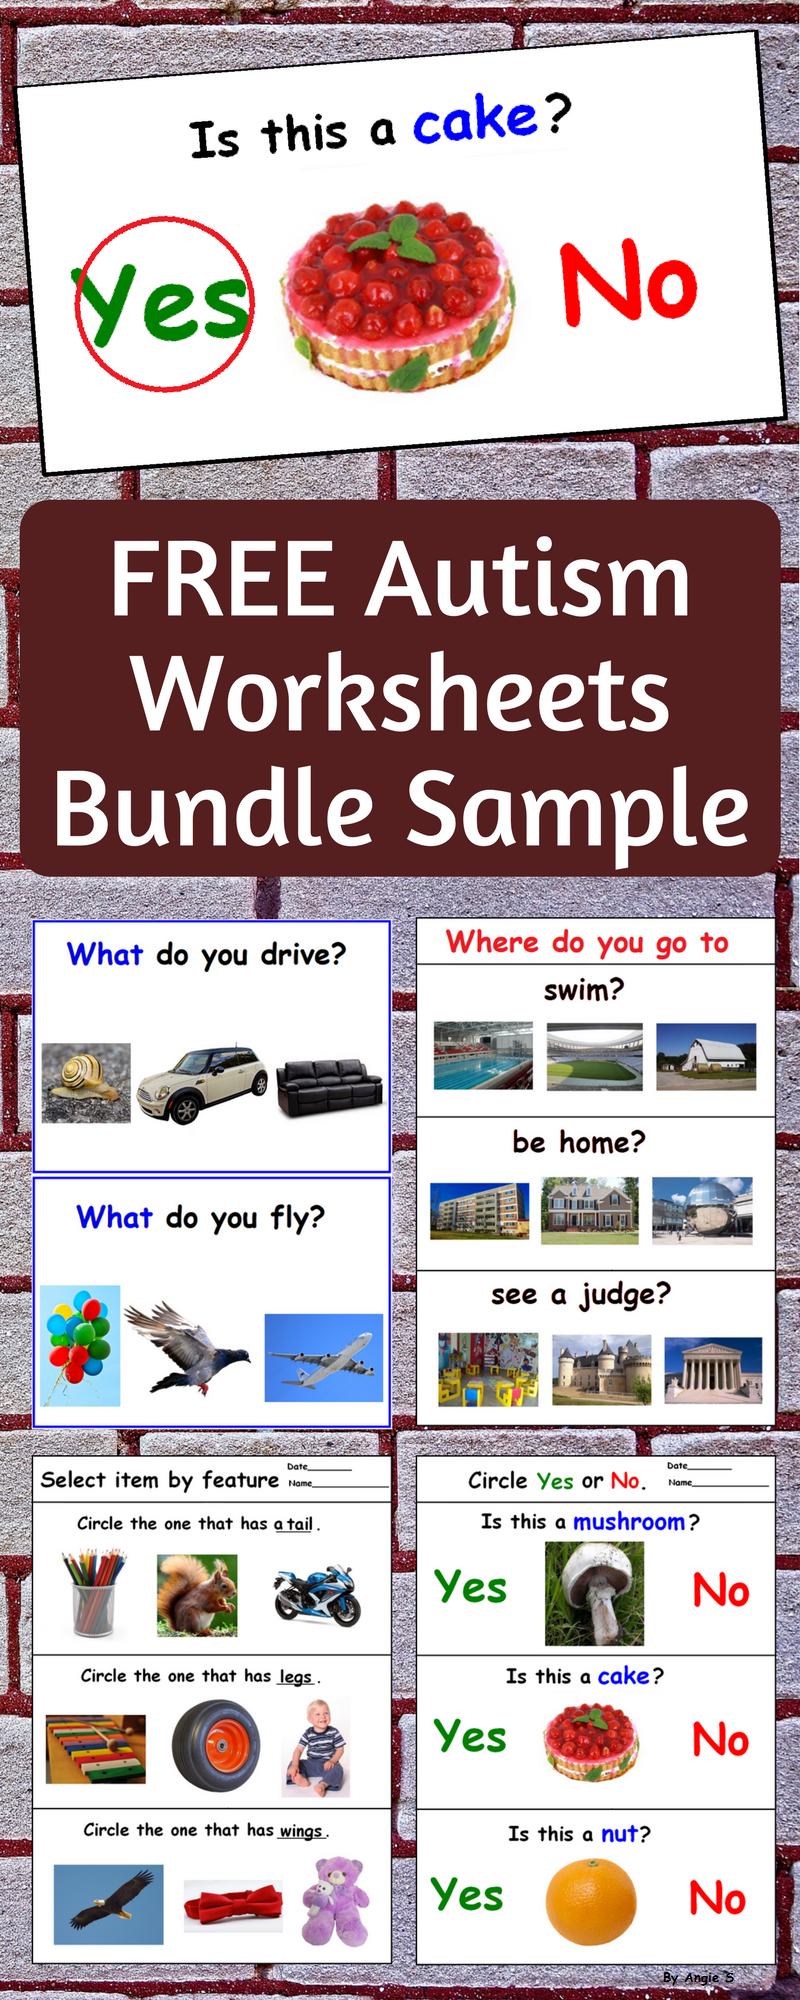 Free Autism Worksheets Bundle Sample For Special Ed And Speech